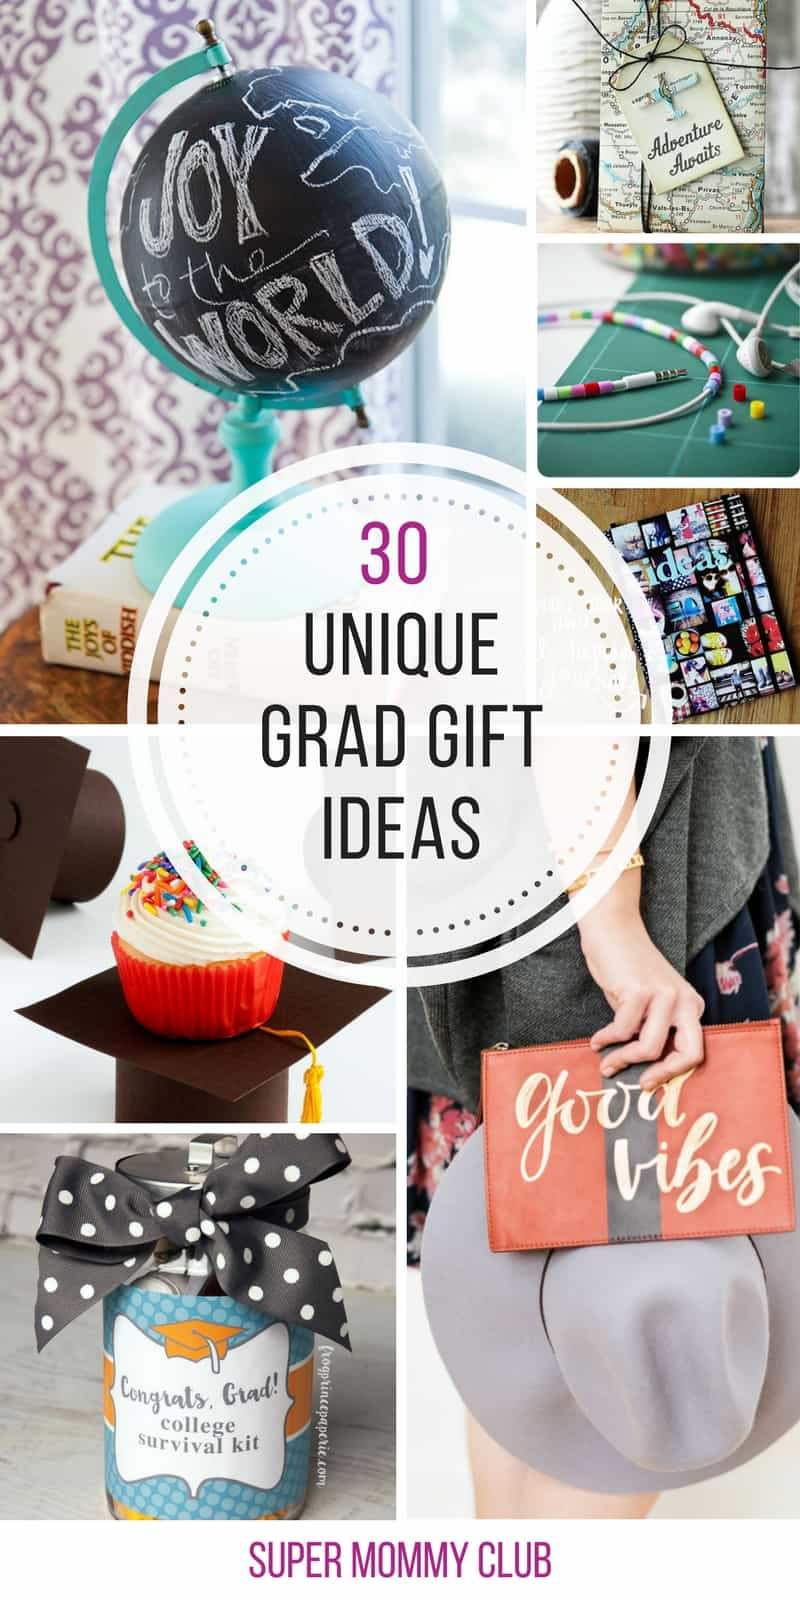 Oh so many unique graduation gift ideas - thanks for sharing!